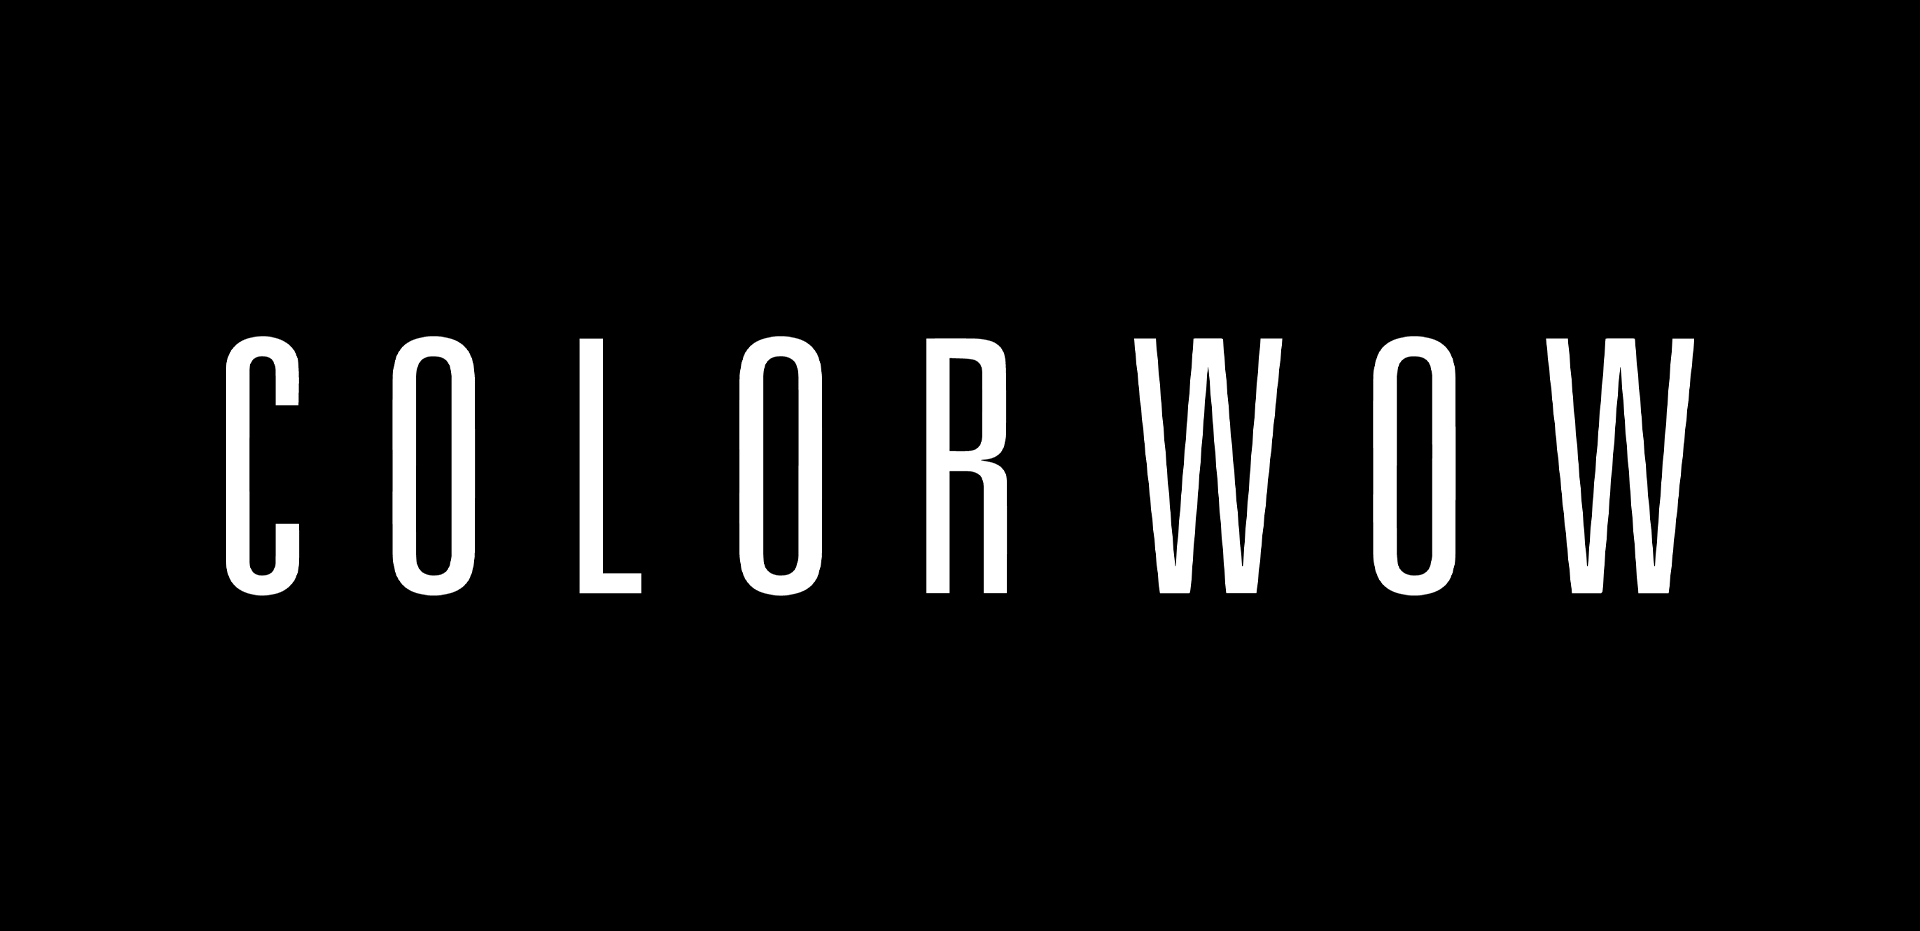 cohorted, luxe, color wow, win, competition